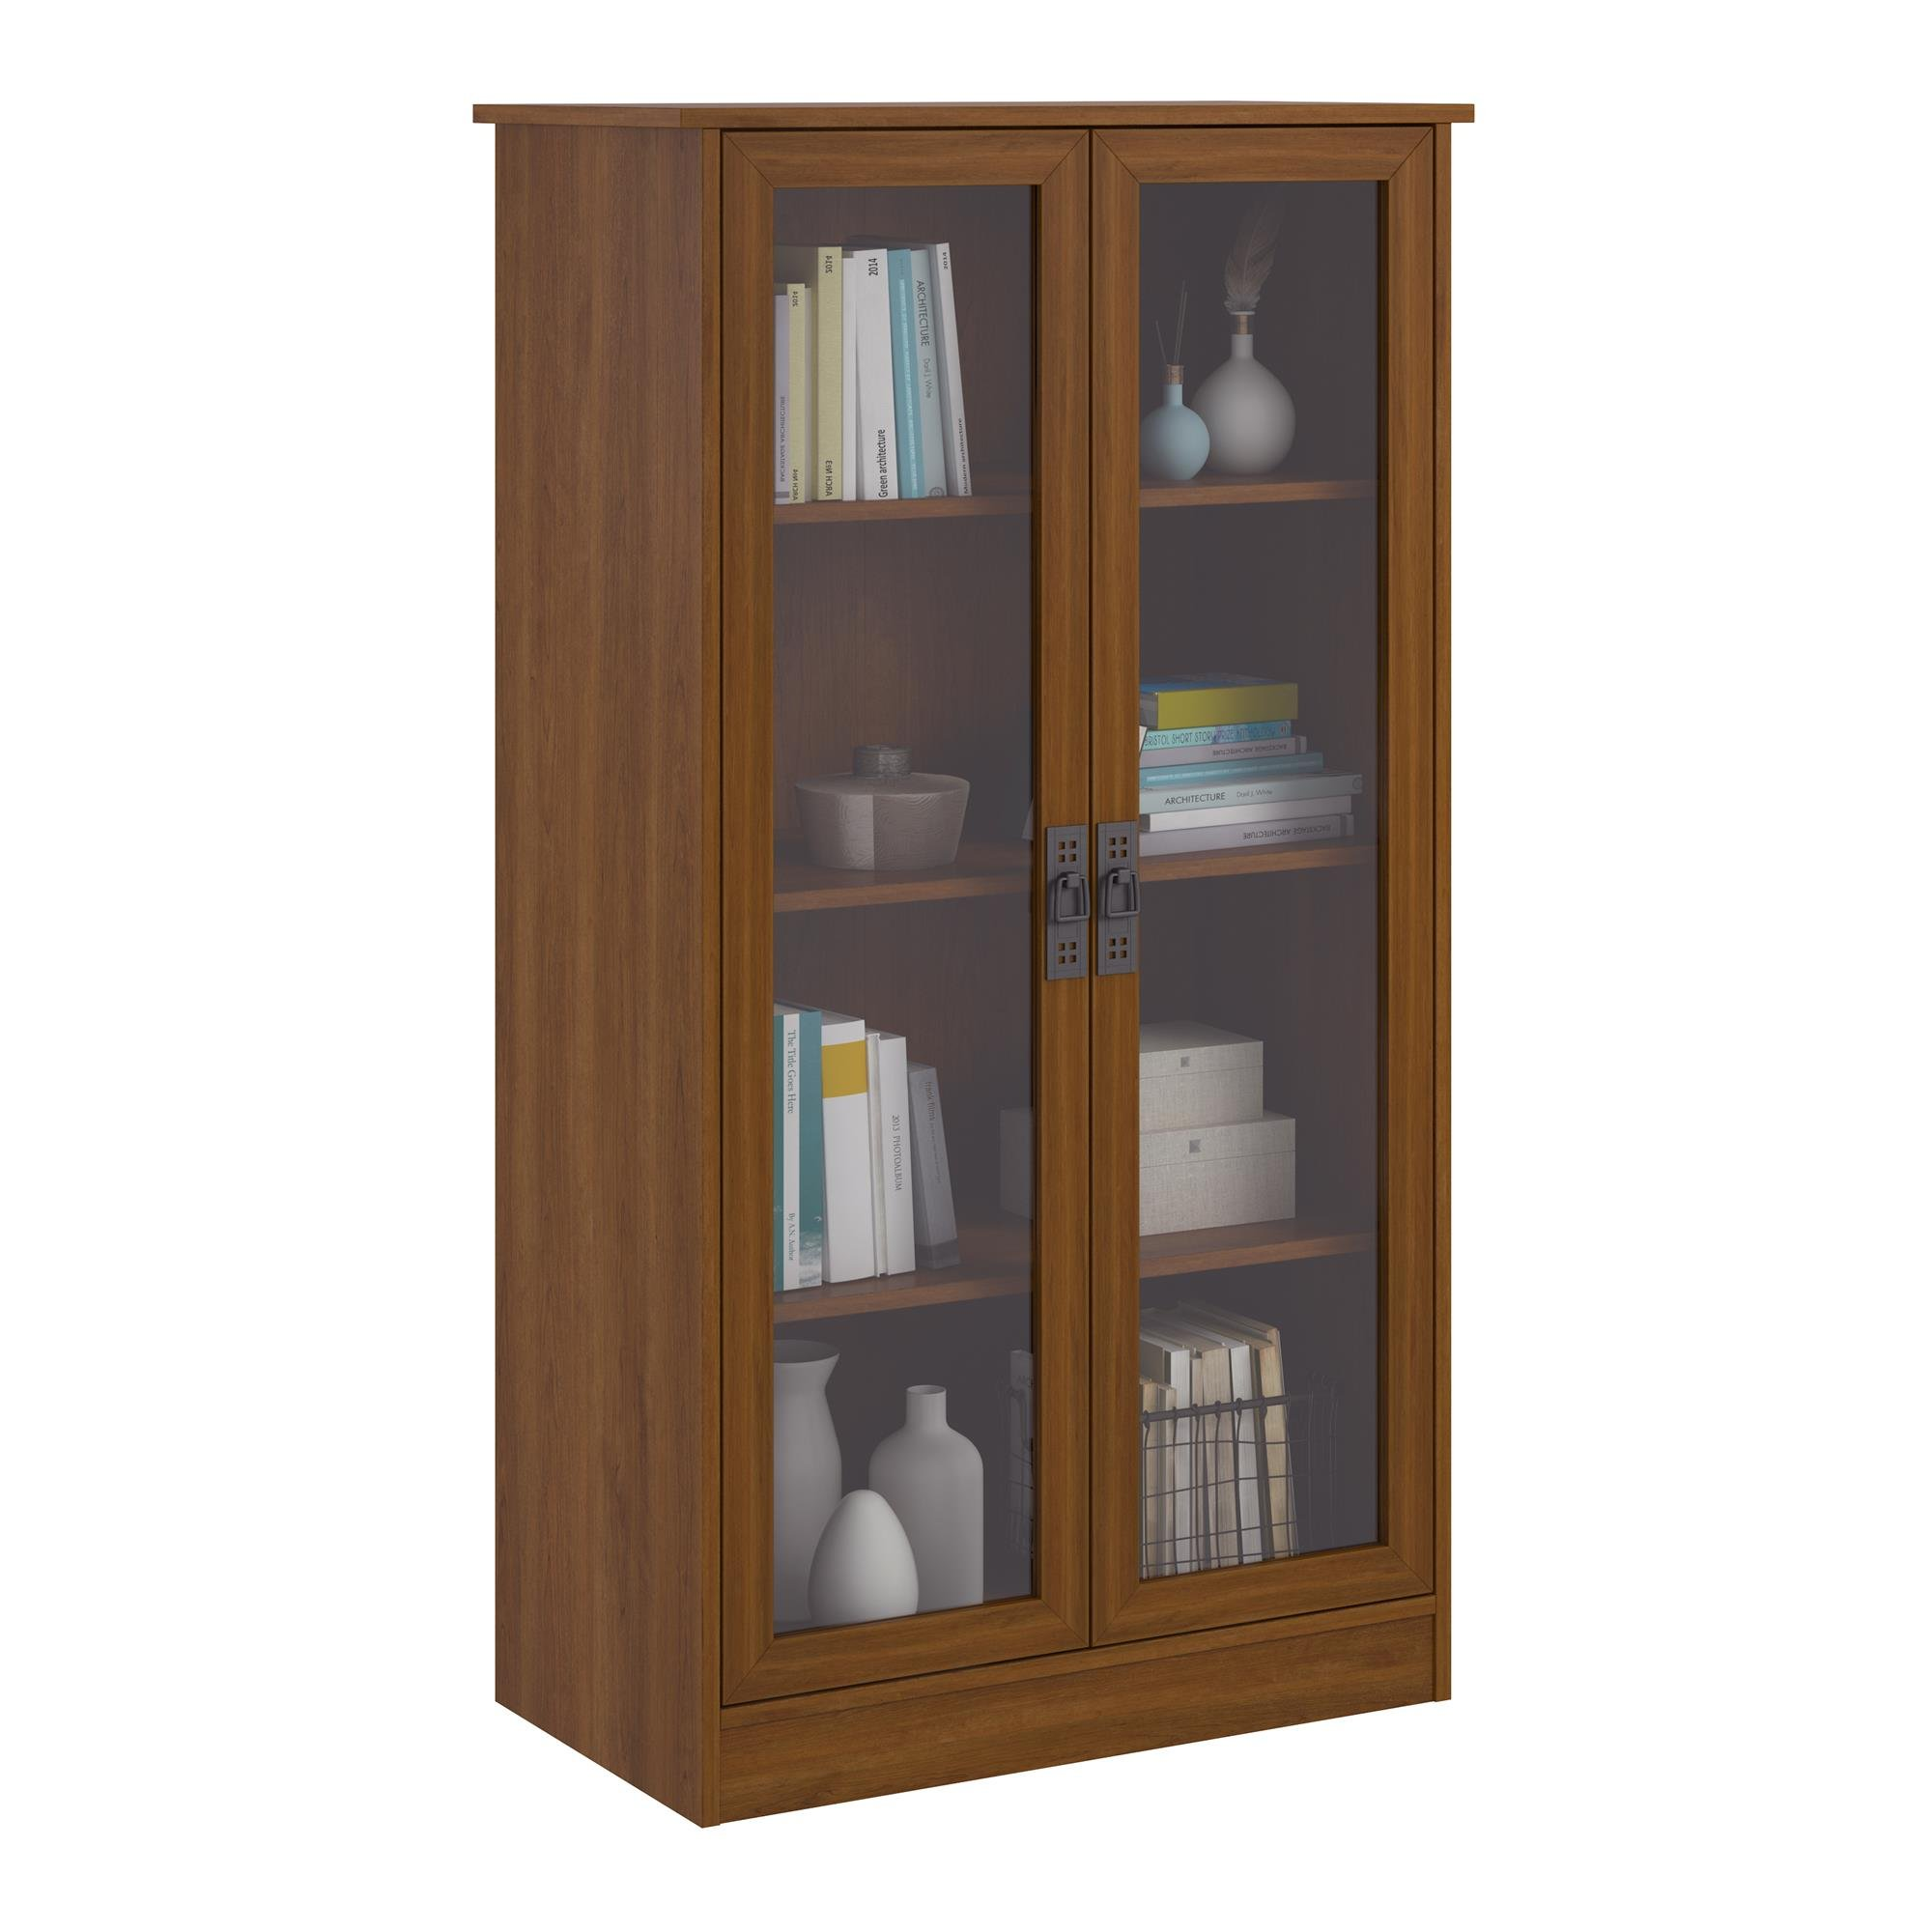 Ameriwood Home Quinton Point Bookcase with Glass Doors, Inspire Cherry by Ameriwood Home